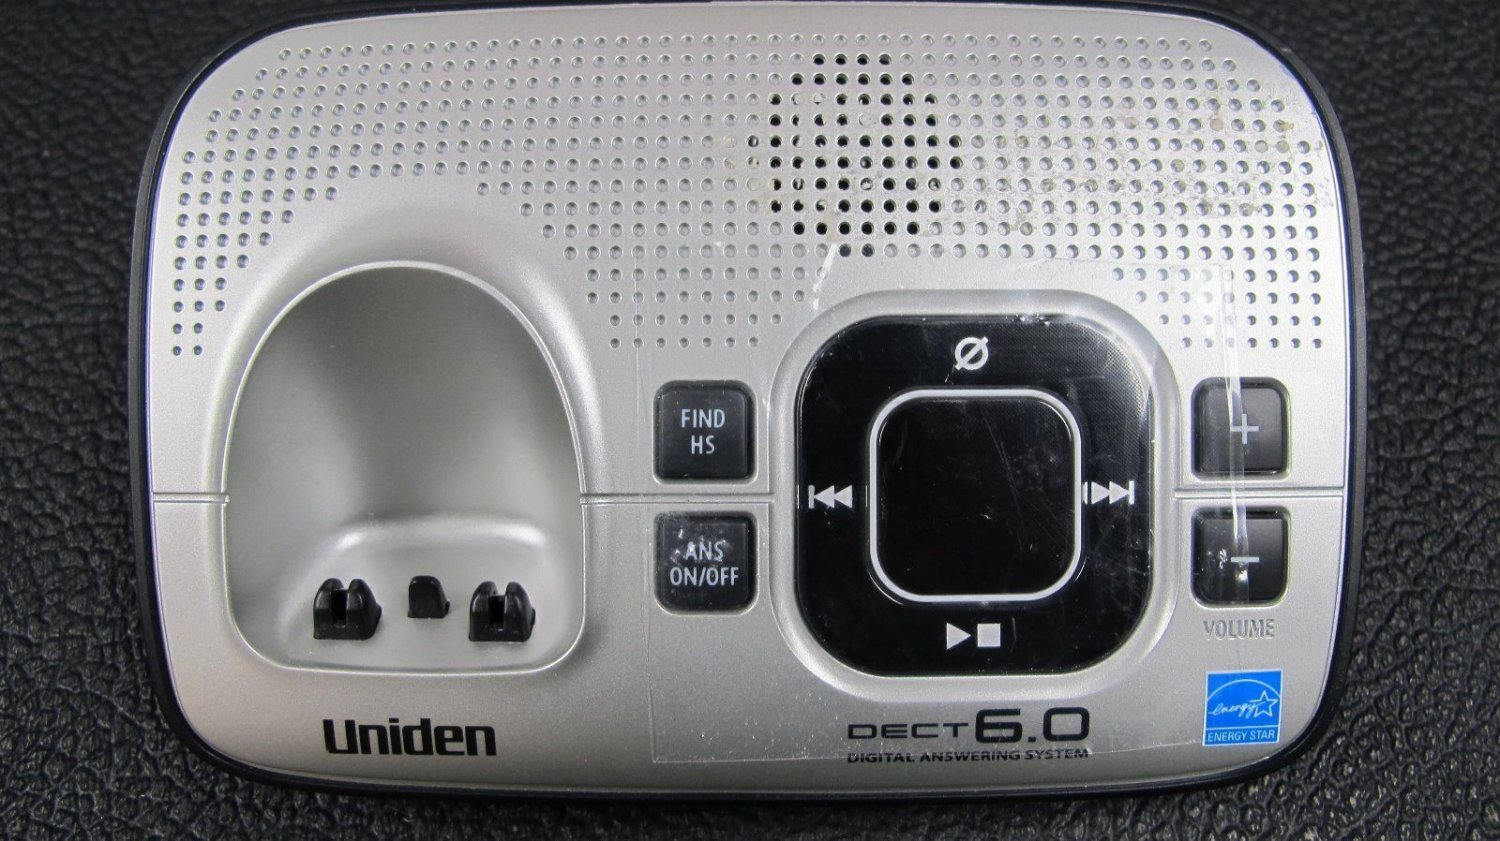 UNIDEN D1680 3 Main CHARGER BASE - charging stand cradle Answering System DECT6